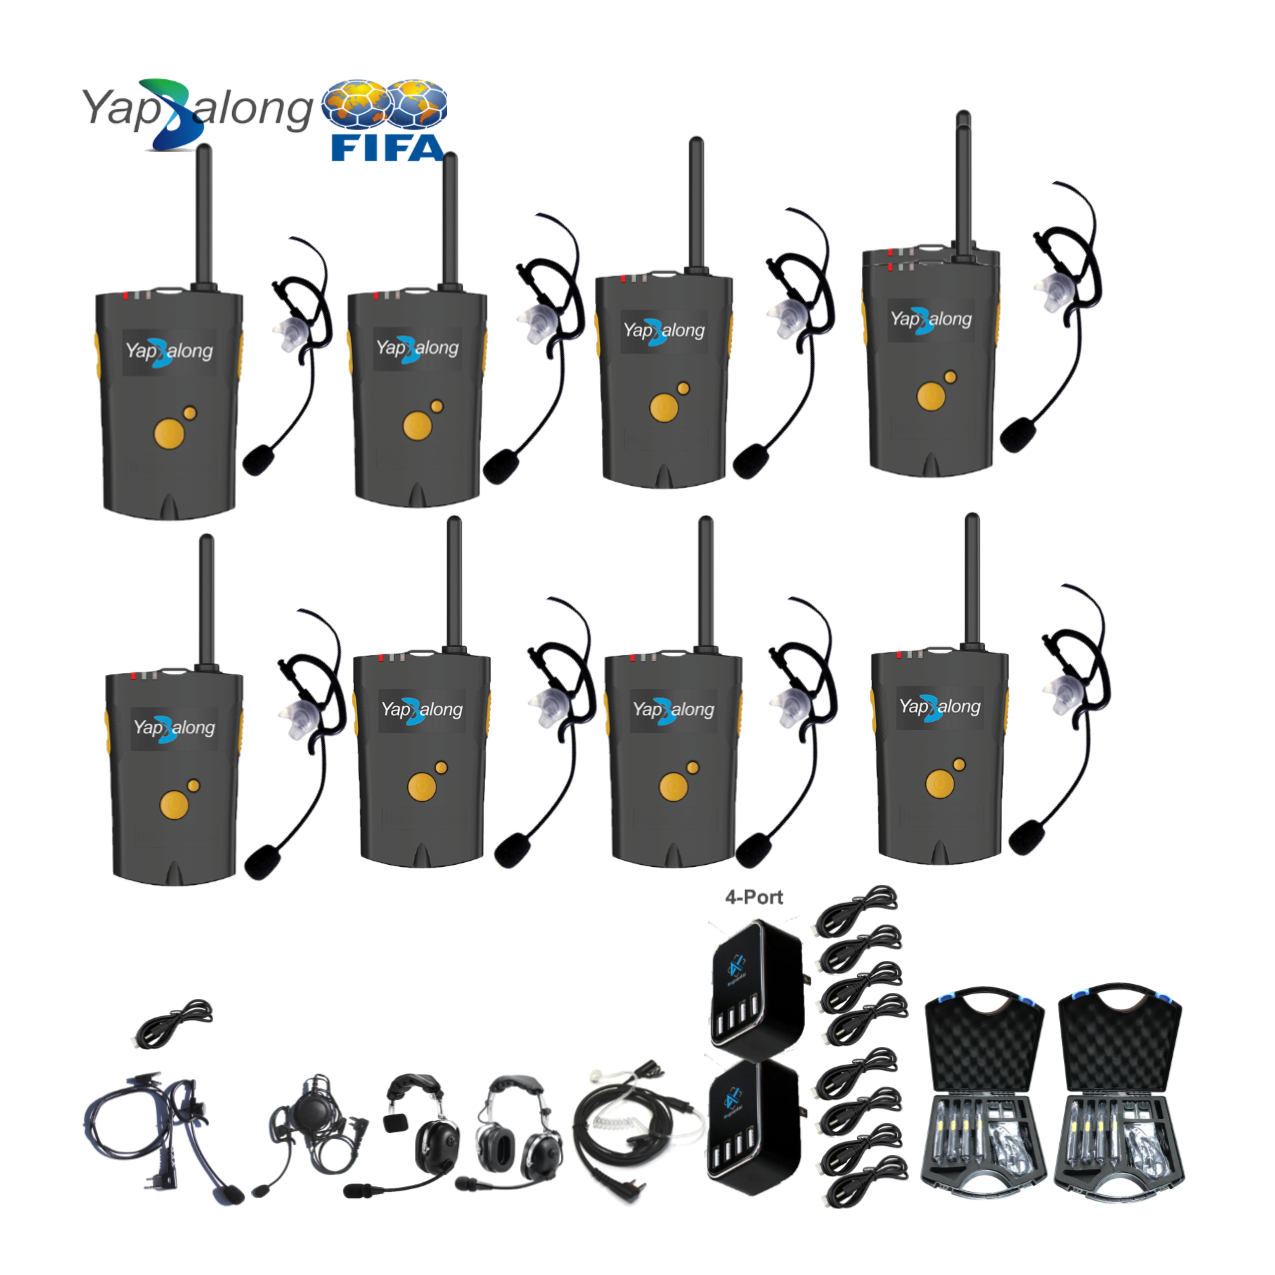 Yapalong 4000 (8-User) Complete Set Intercom Systems Intercom Systems